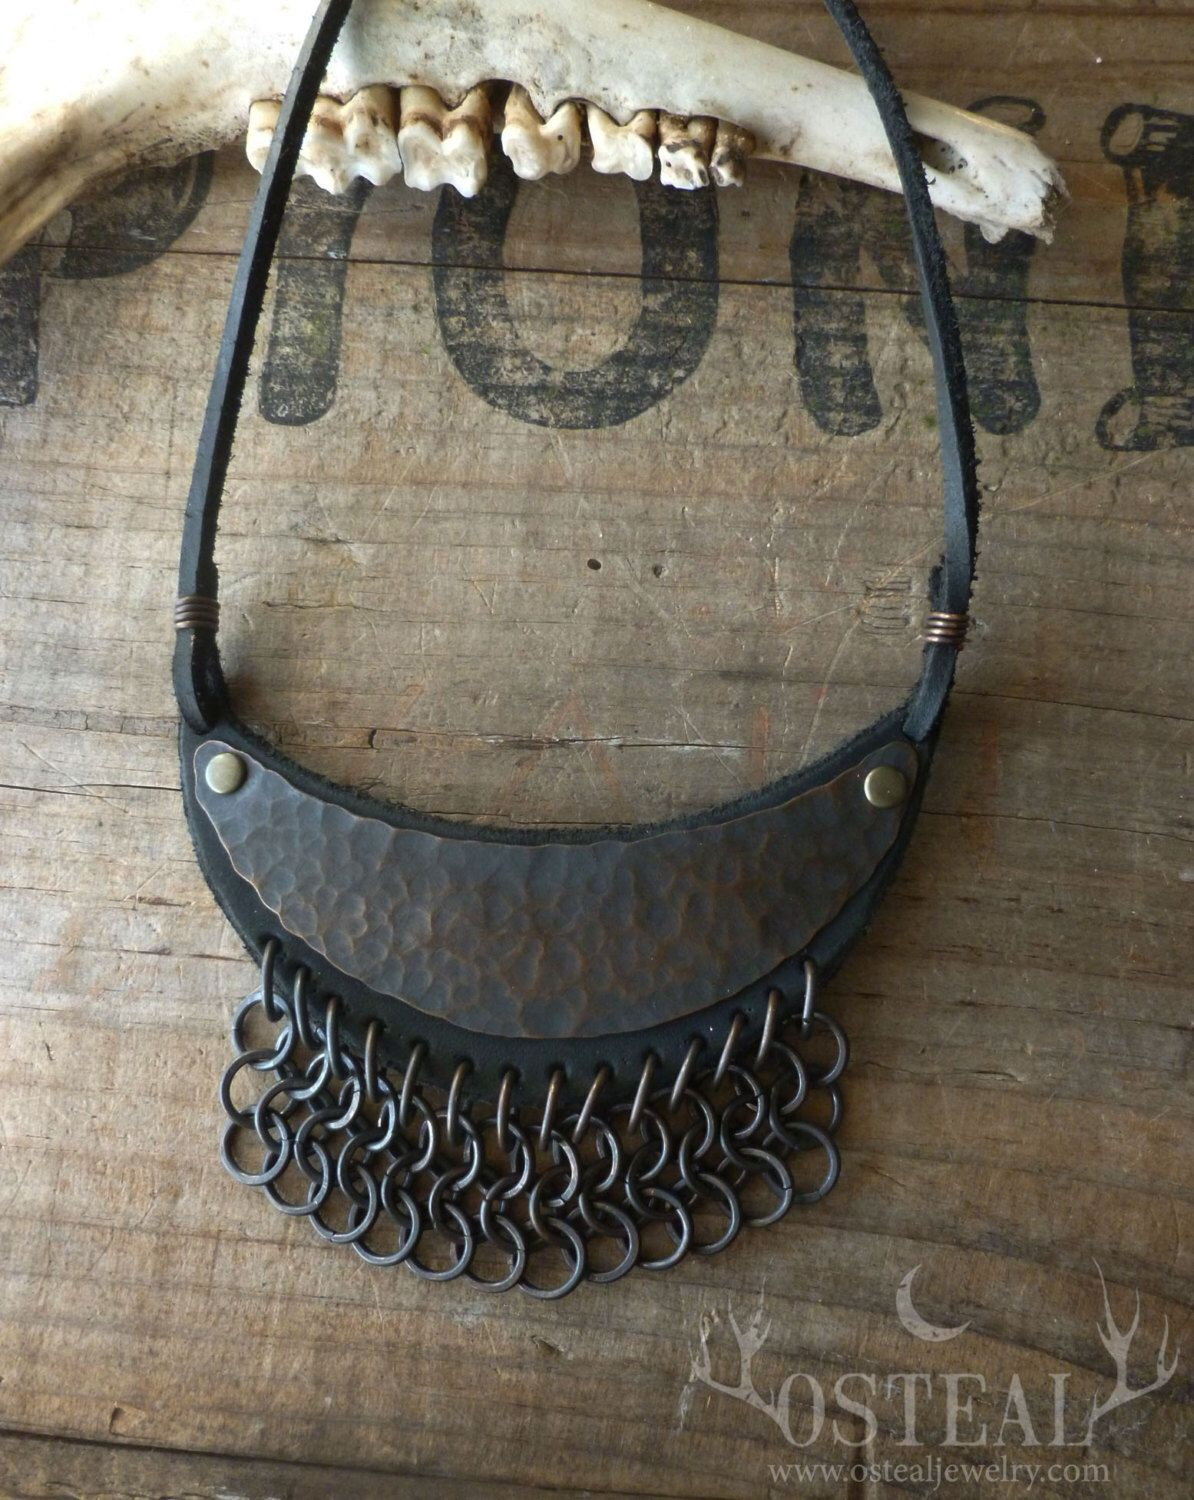 Harvest Moon  - necklace, leather, copper chainmaille by Osteal on Etsy https://www.etsy.com/listing/215425348/harvest-moon-necklace-leather-copper